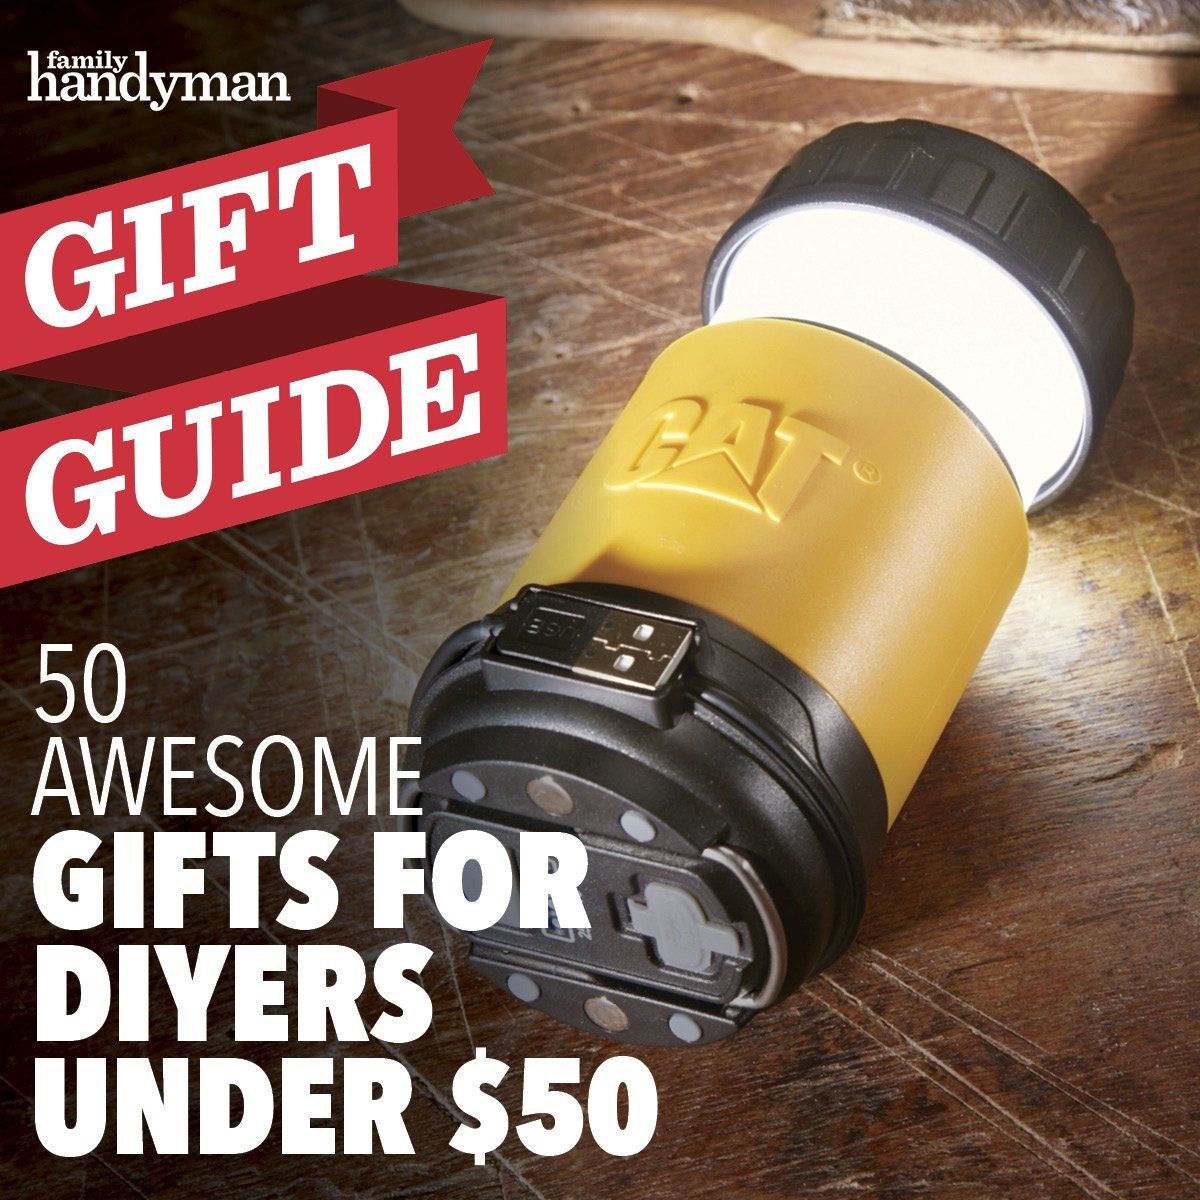 50 Awesome Gifts For Diyers Under 50 In 2020 With Images Family Handyman Handyman Gifts Family Gift Guide